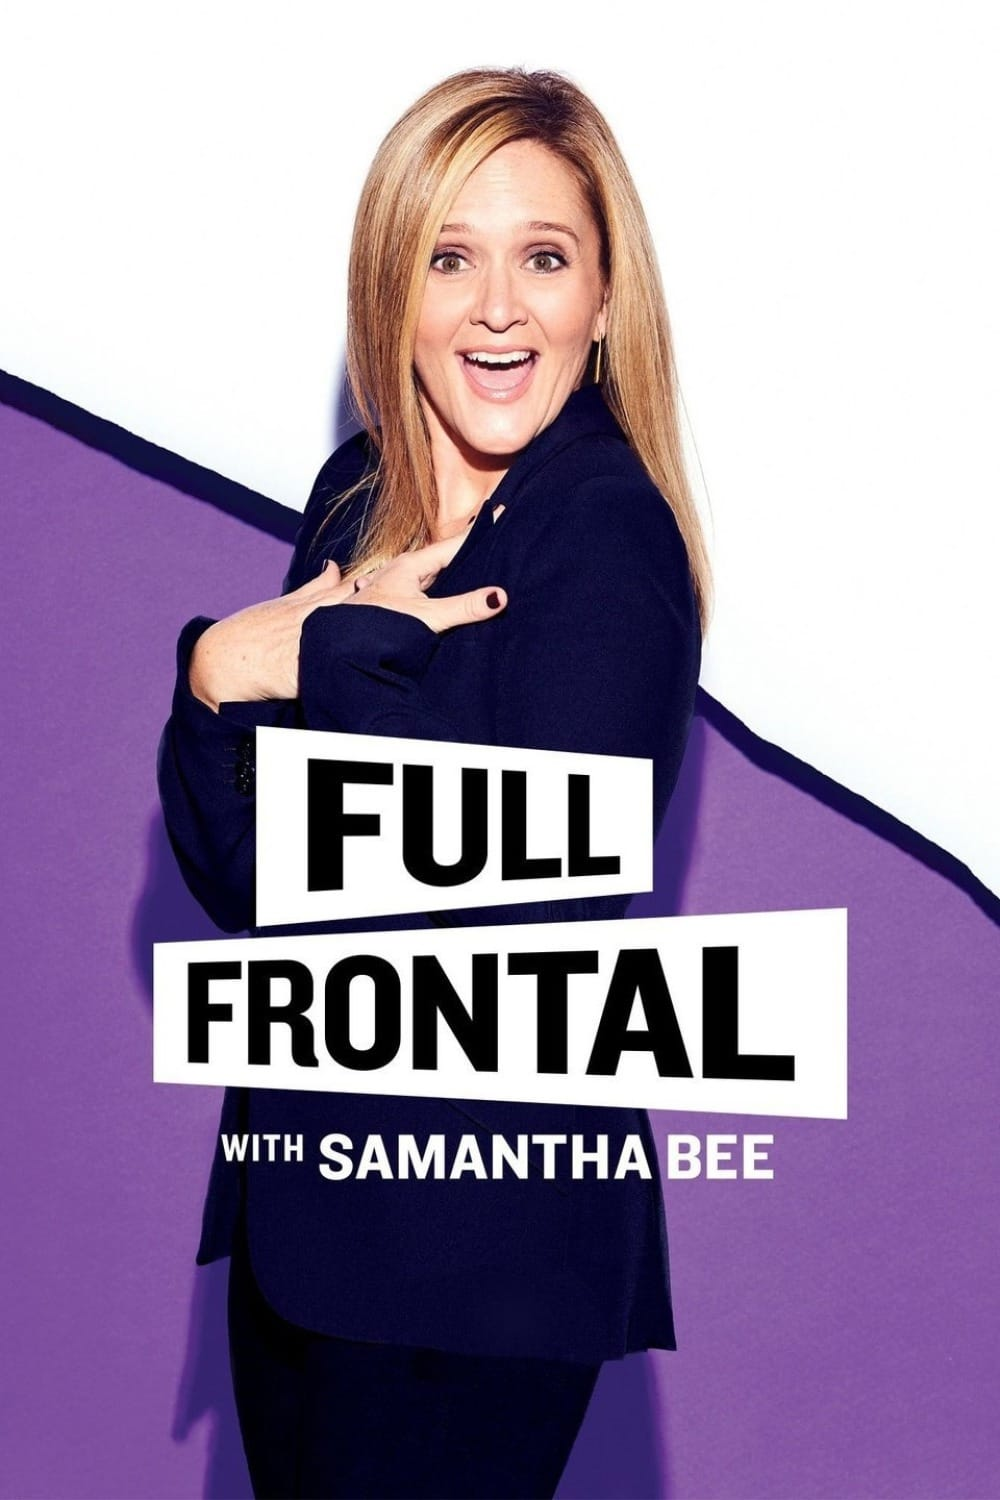 image for Full Frontal with Samantha Bee